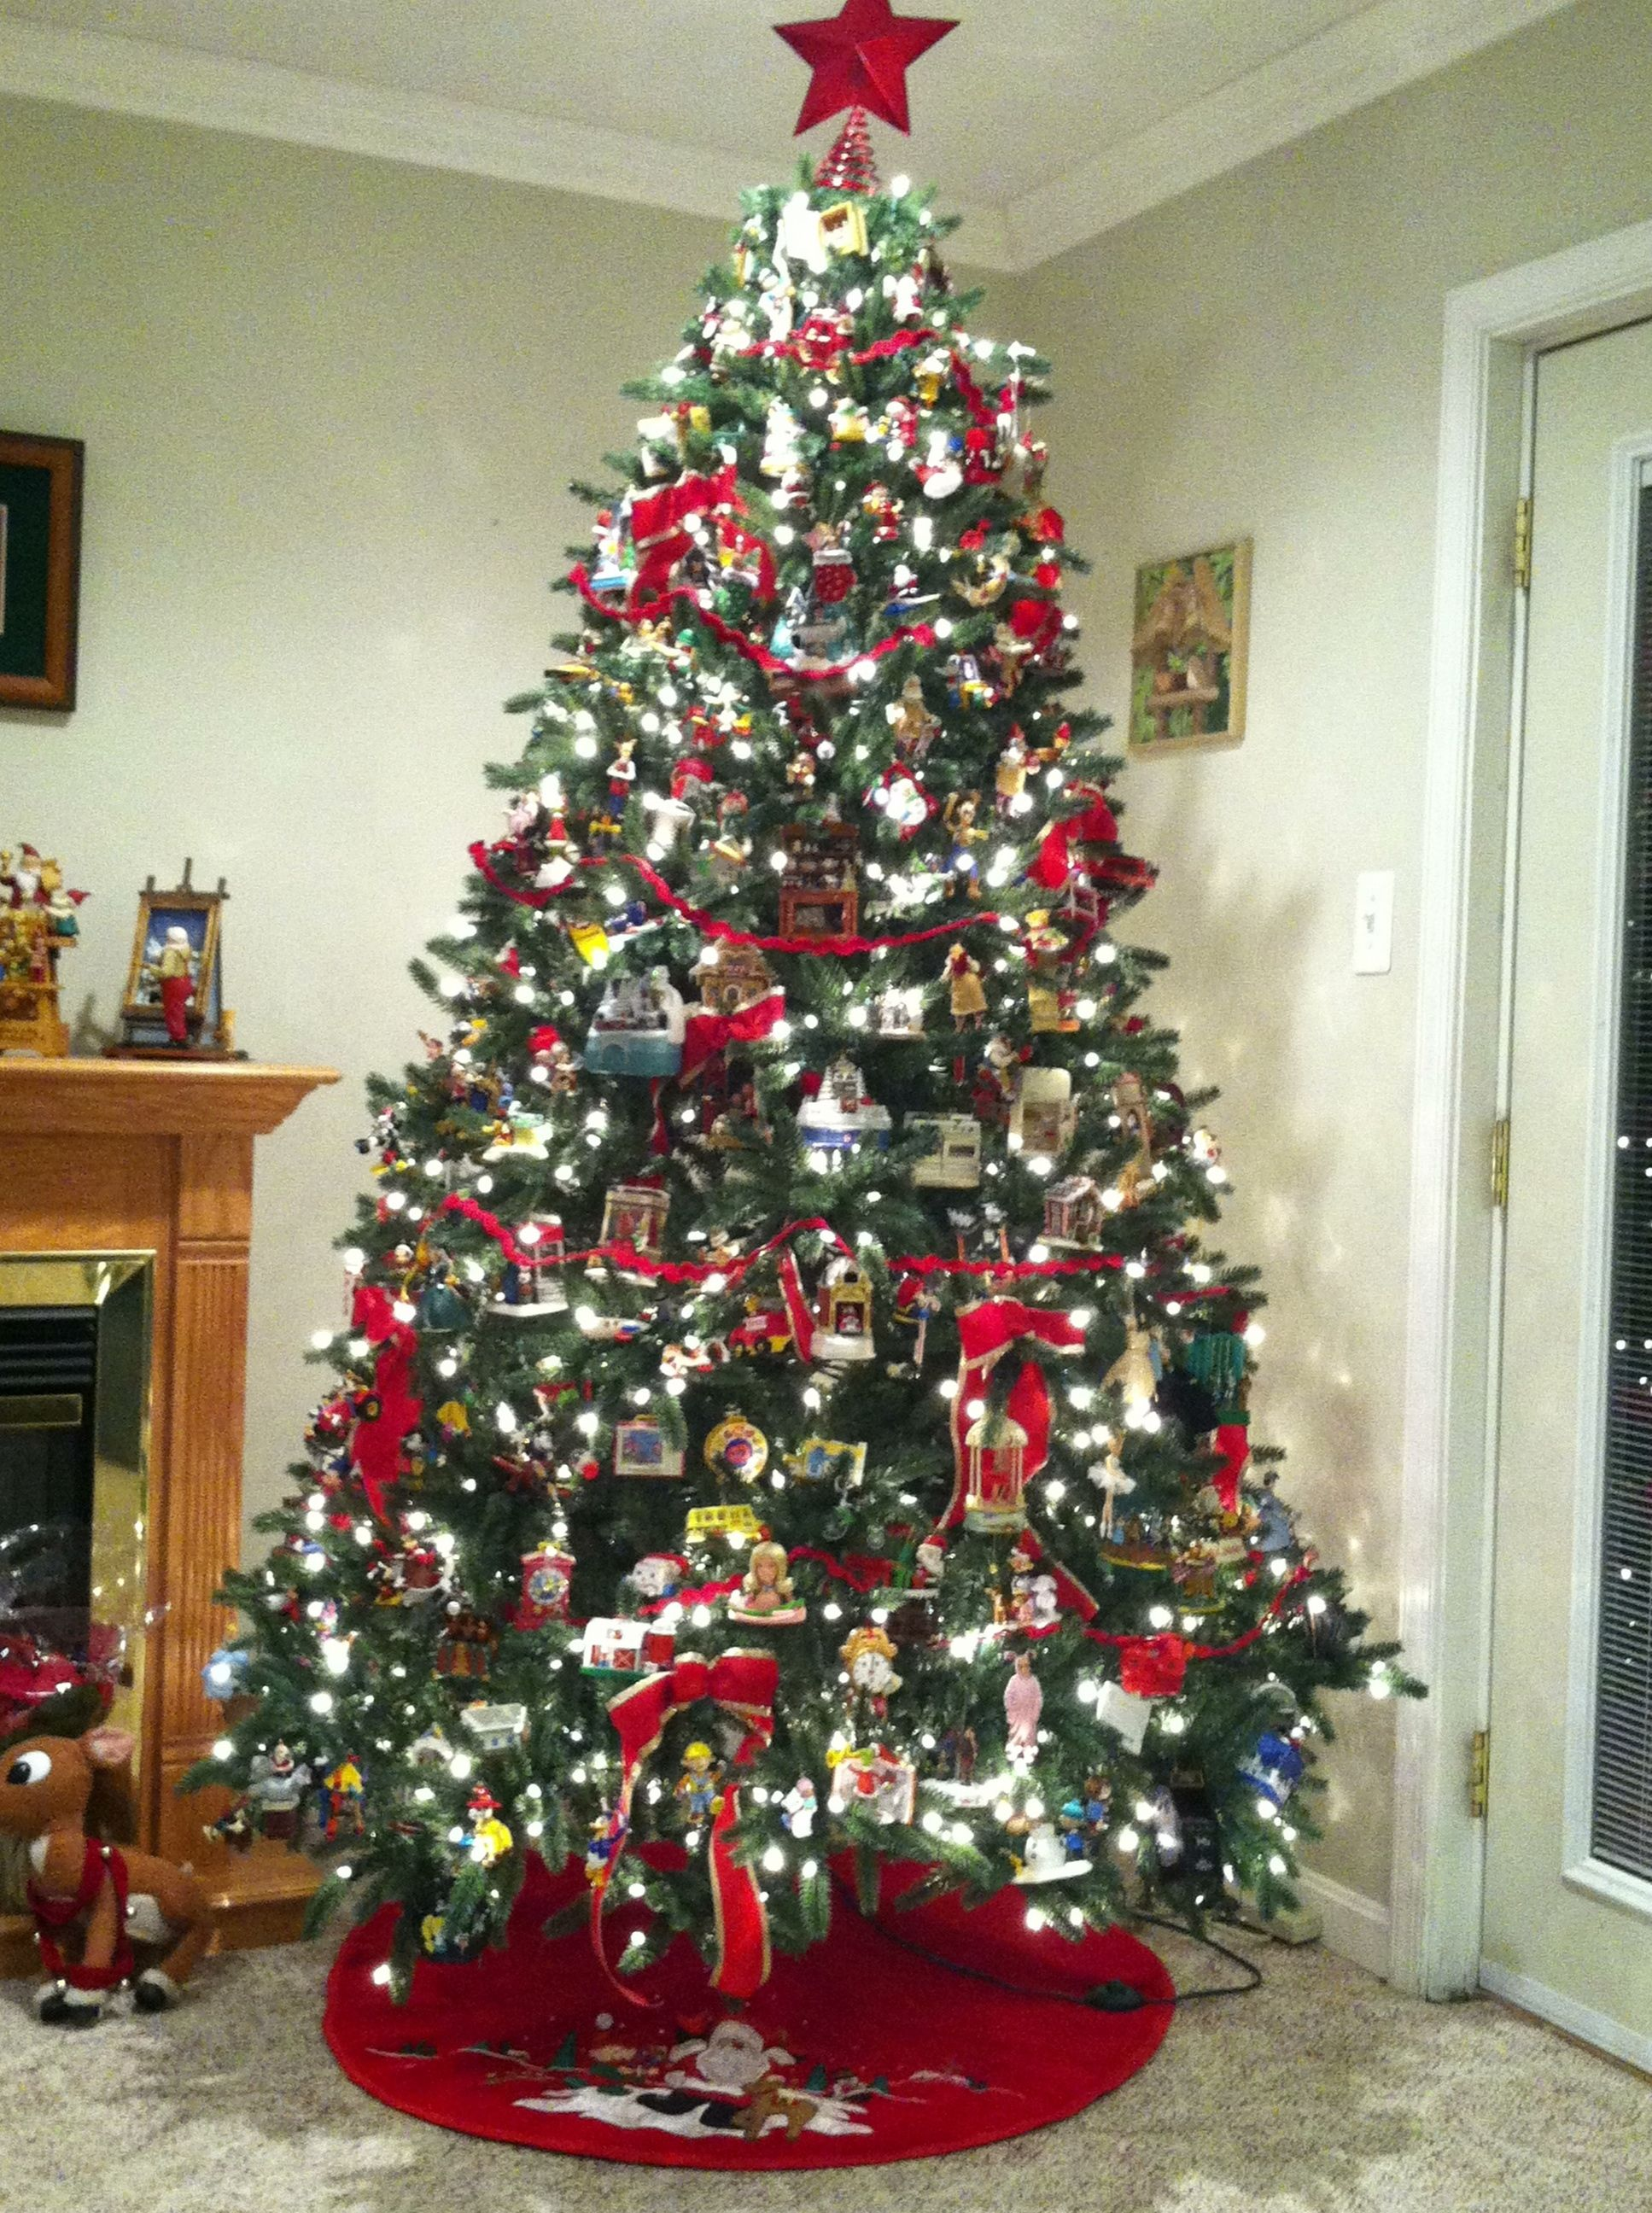 Hallmark Christmas Tree My Mom S Christmas Tree The Most Beautiful Christmas Tree Beautiful Christmas Trees Holiday Christmas Tree Christmas Tree Decorations